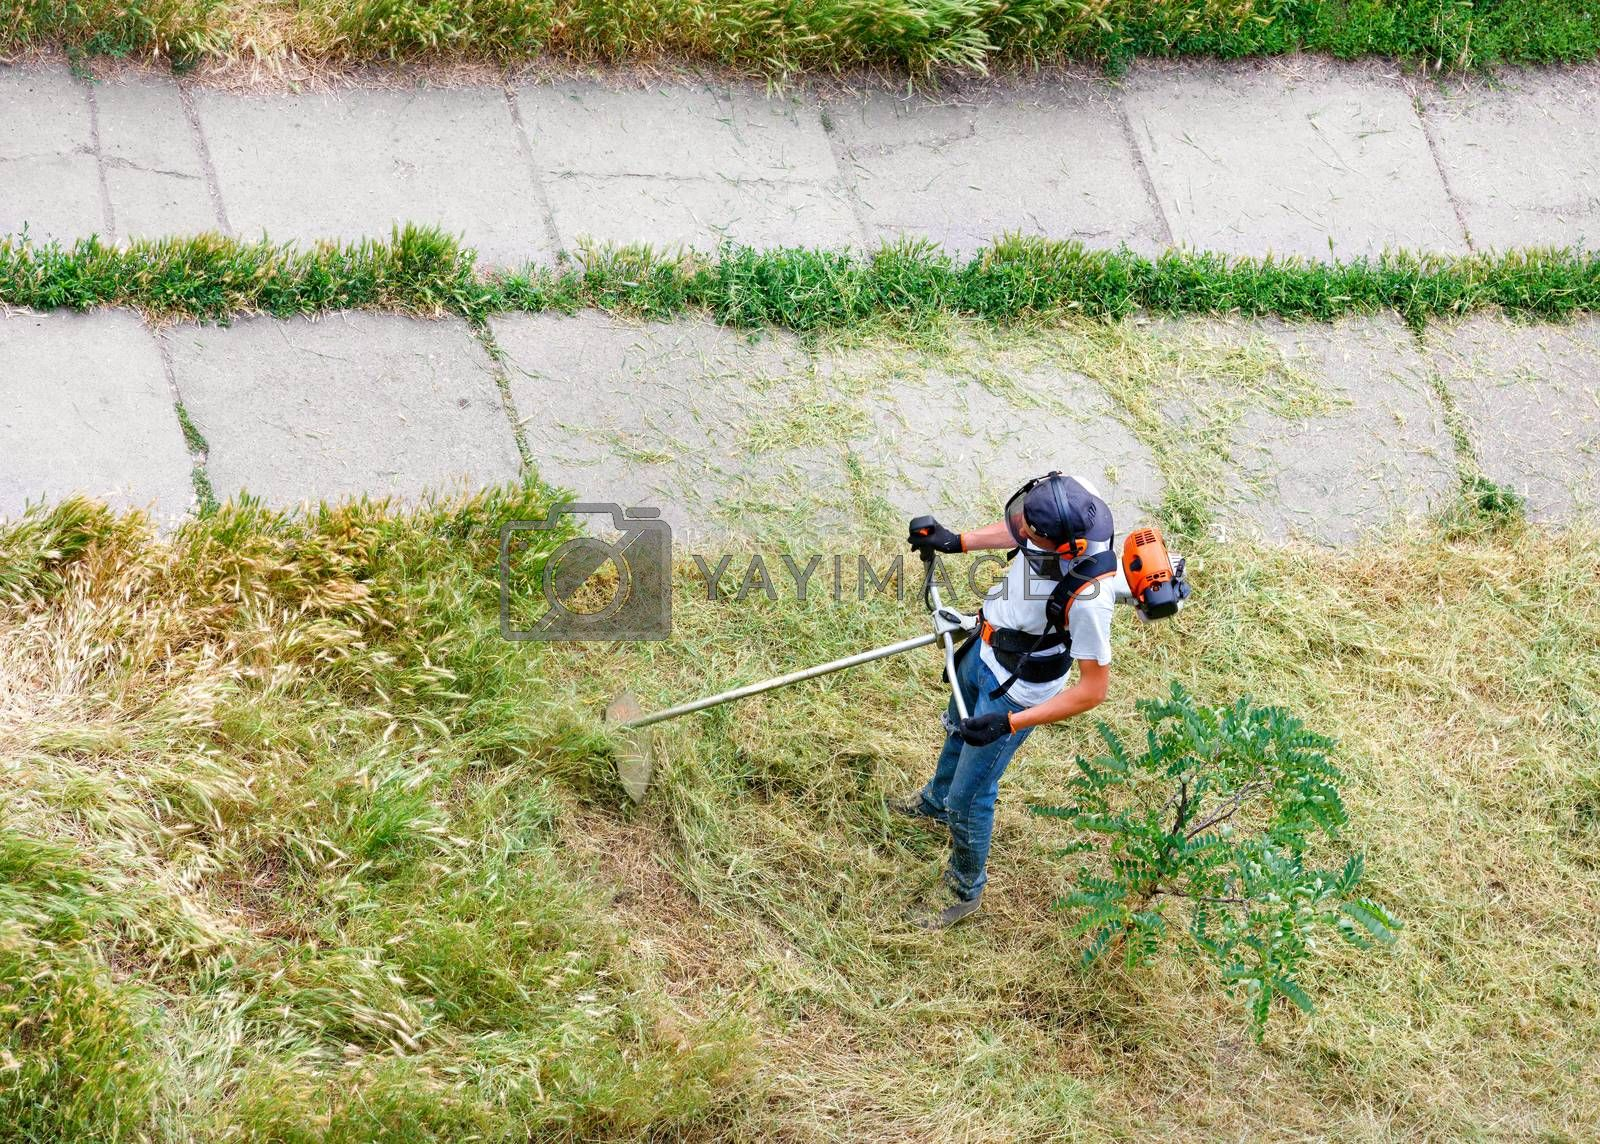 A service worker with a petrol industrial trimmer mows tall grass on the lawn of a city park along a pedestrian walkway. Copy space, top view.